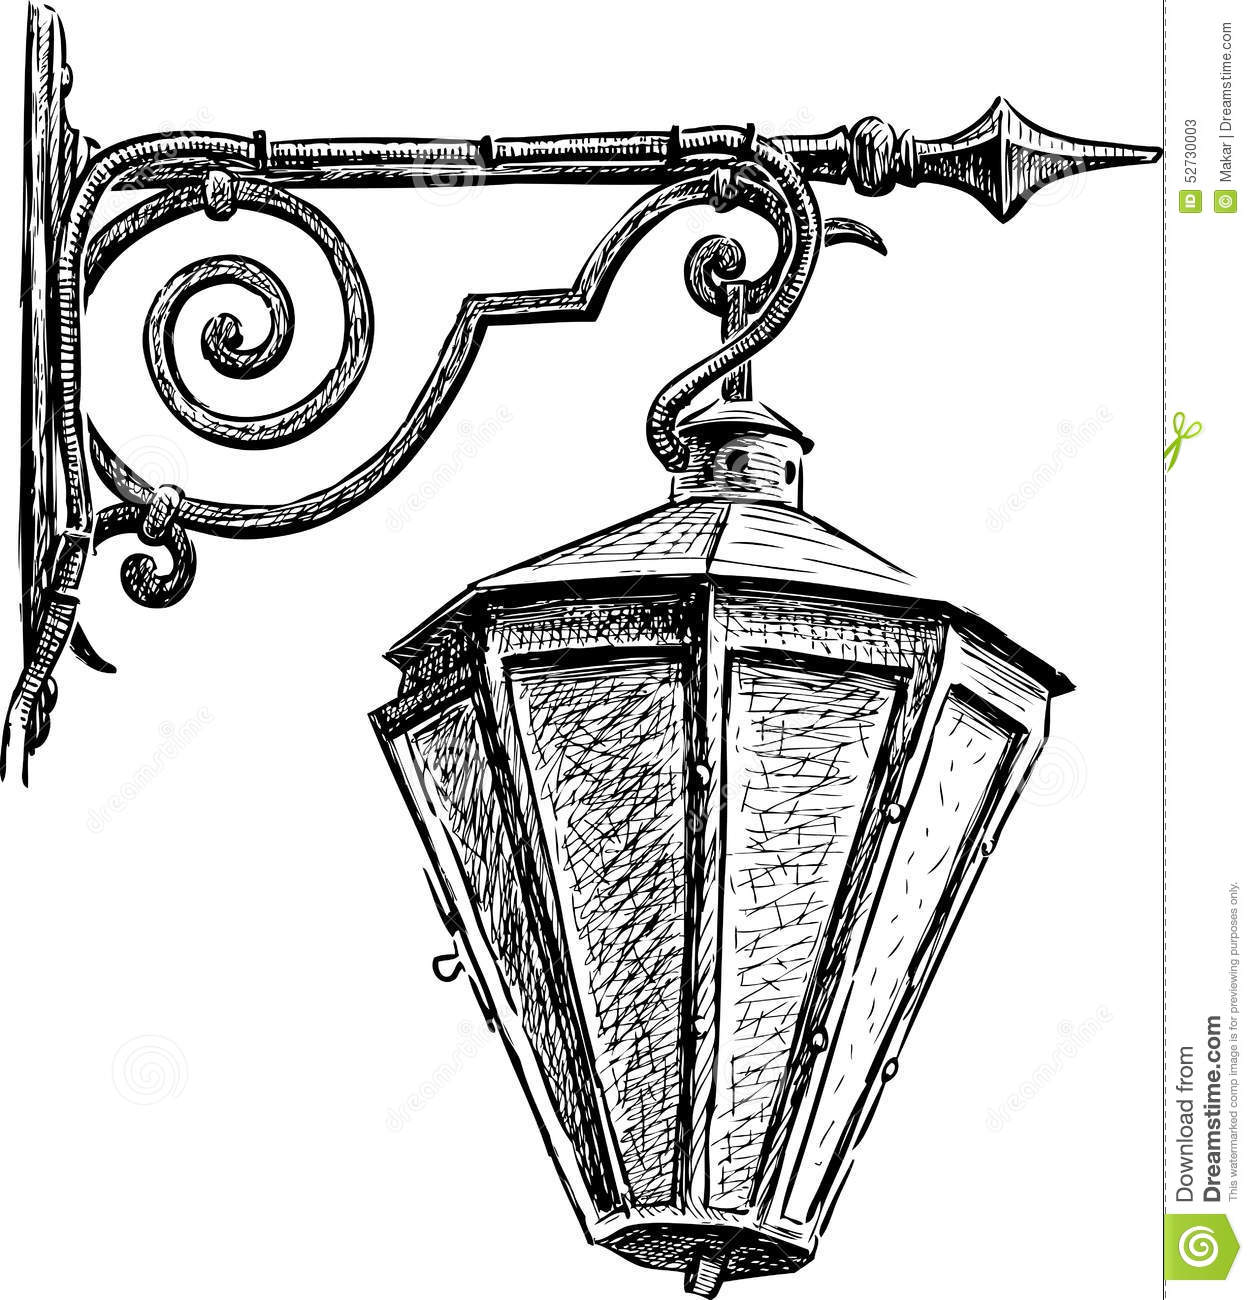 Stock Illustration Pattern Round Ornament Meander Vector Illustration Image54508298 additionally Rolling Pin 5 moreover Frame Border Round Circle Beautiful Vector 460076989 further Sharped Point Box Crayons Coloring Pages likewise Stock Illustration Carpenter Using Woodworking Tools And. on antique tools